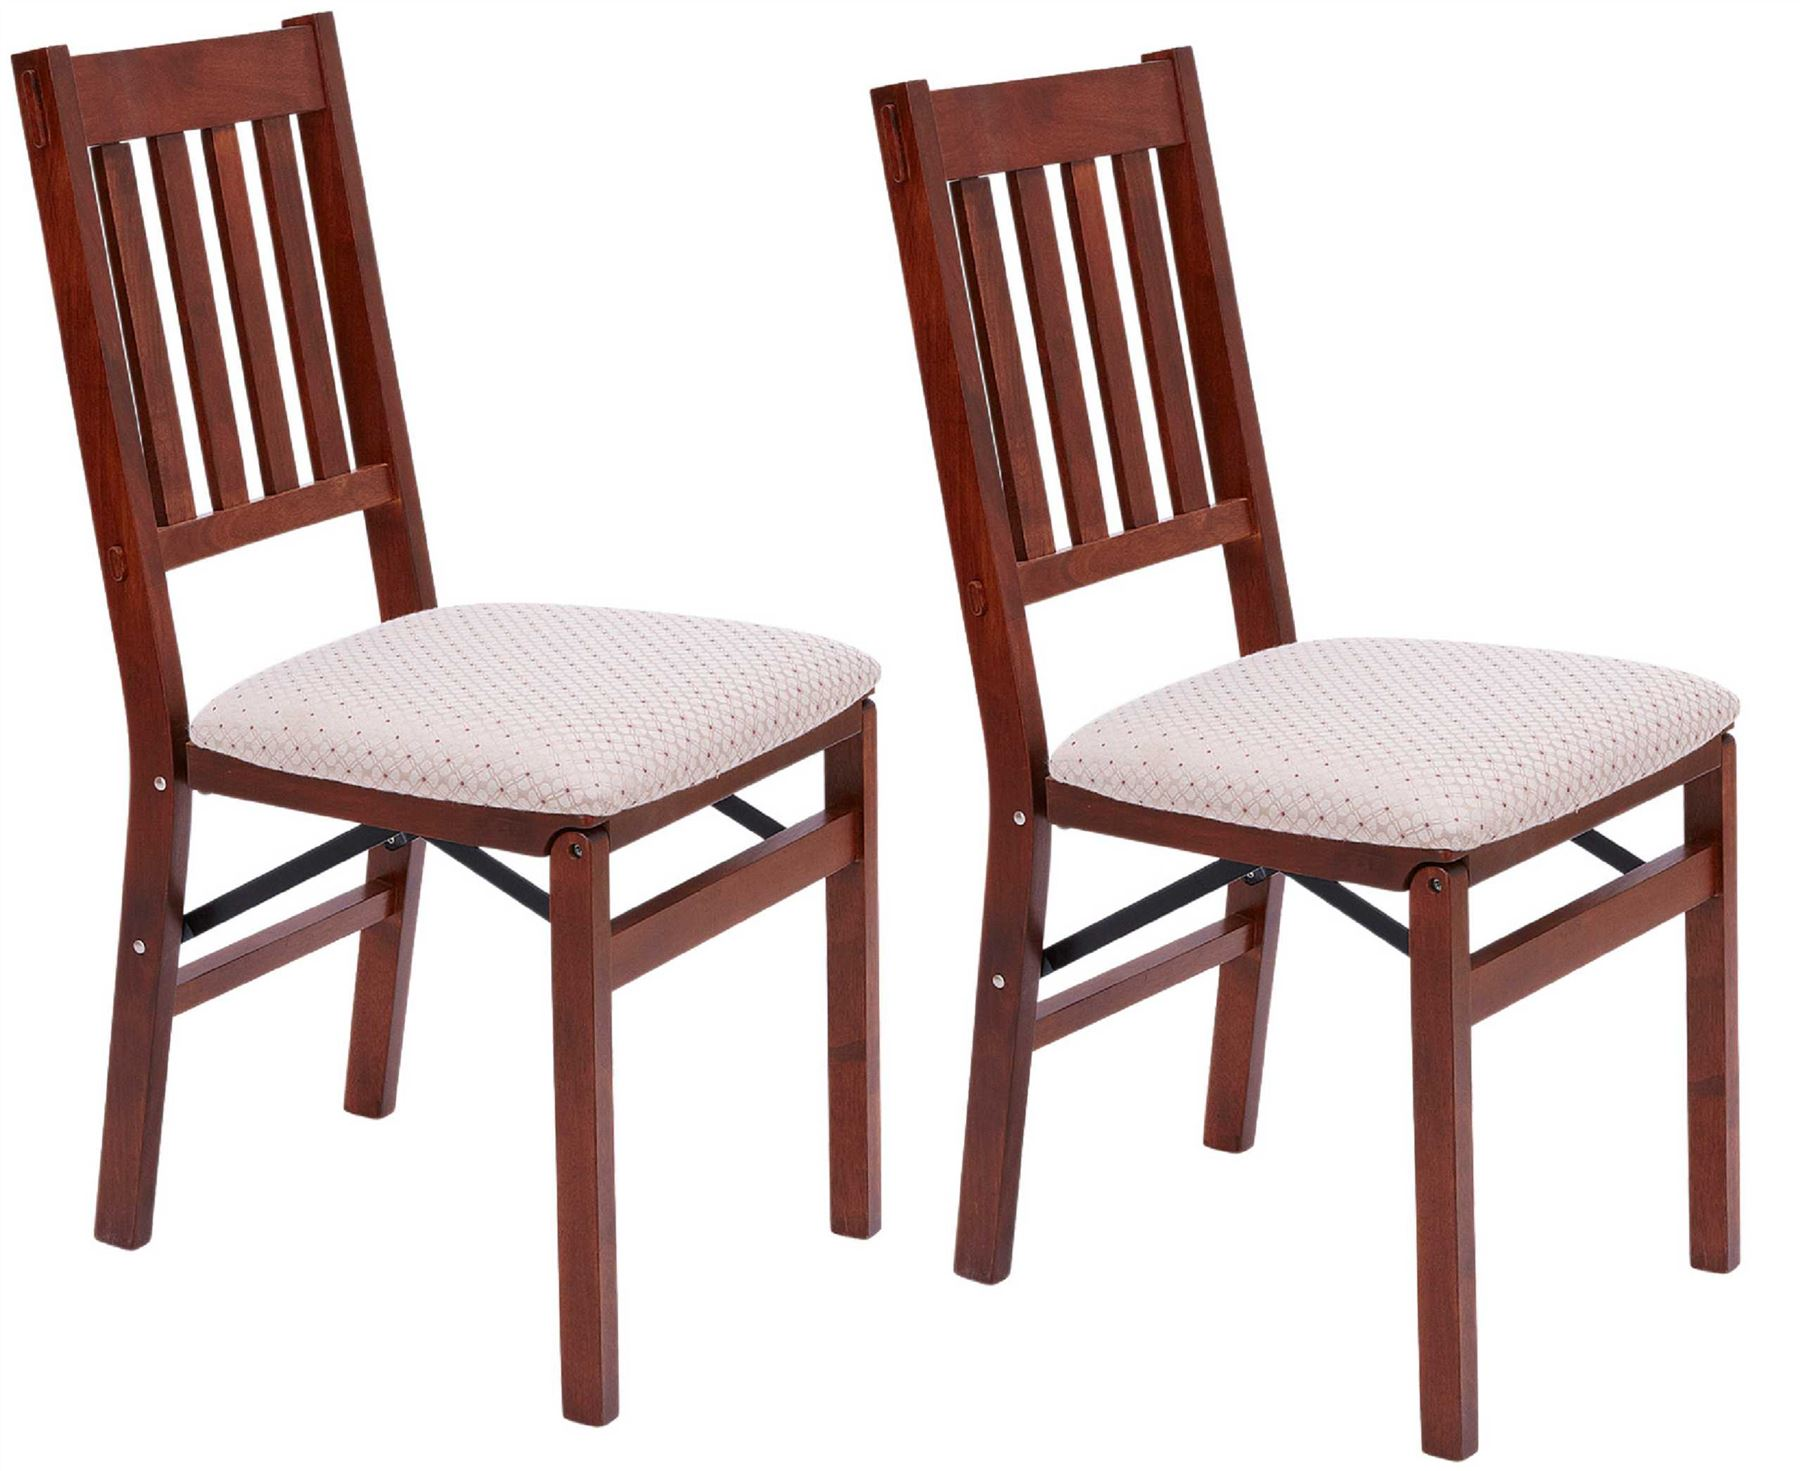 Foldable Dining Chairs Arts And Crafts Folding Dining Chairs 2x Solid Hardwood